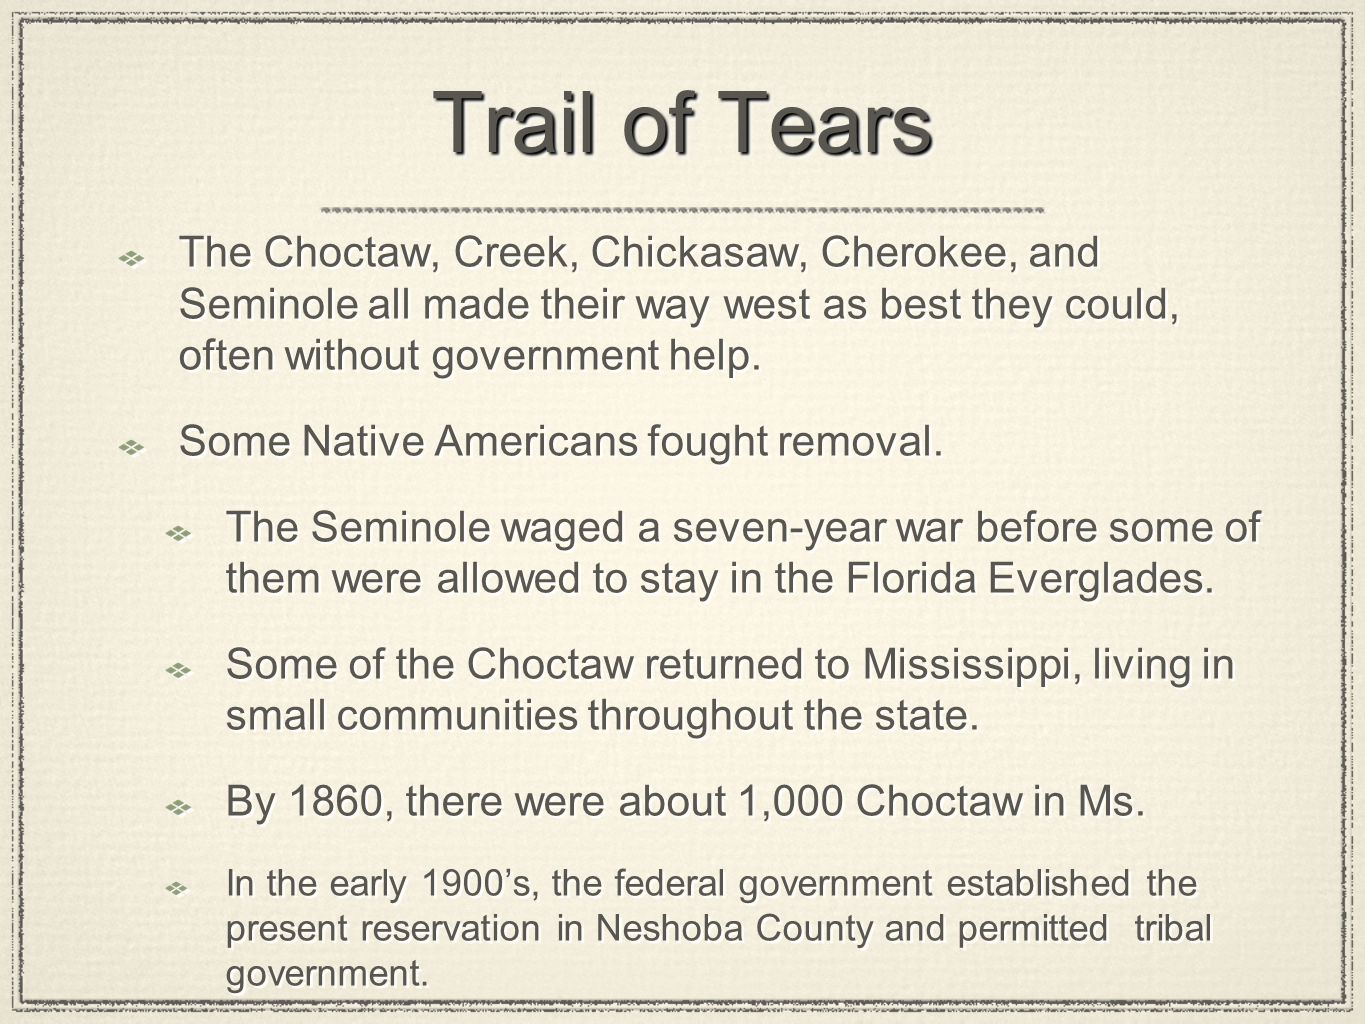 Trail of Tears The Choctaw, Creek, Chickasaw, Cherokee, and Seminole all made their way west as best they could, often without government help.